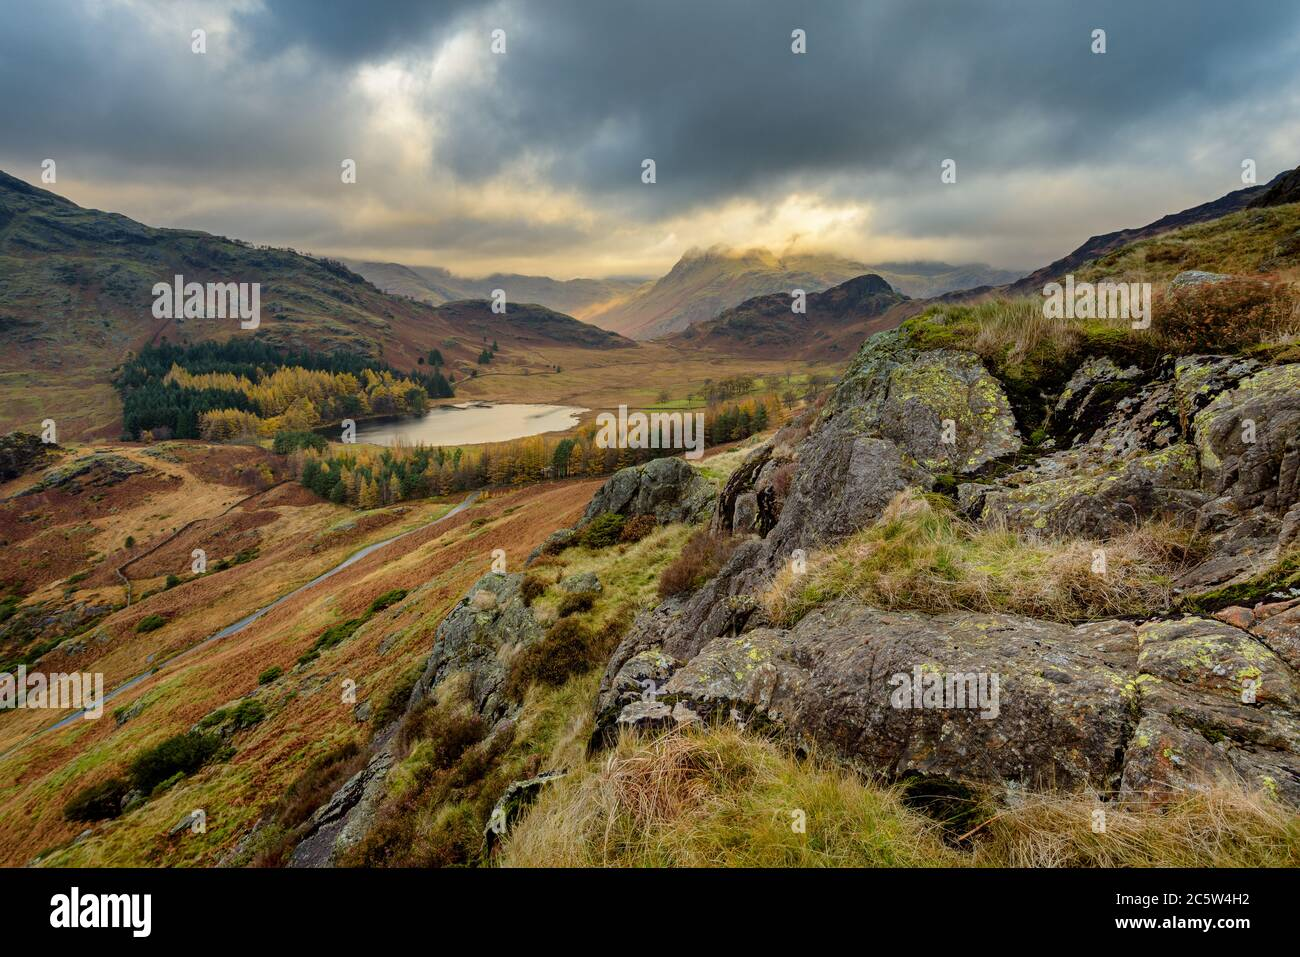 Dramatic View Of Blea Tarn From High Up With Storm Clouds On An Autumn Morning. Lake District, UK. Stock Photo